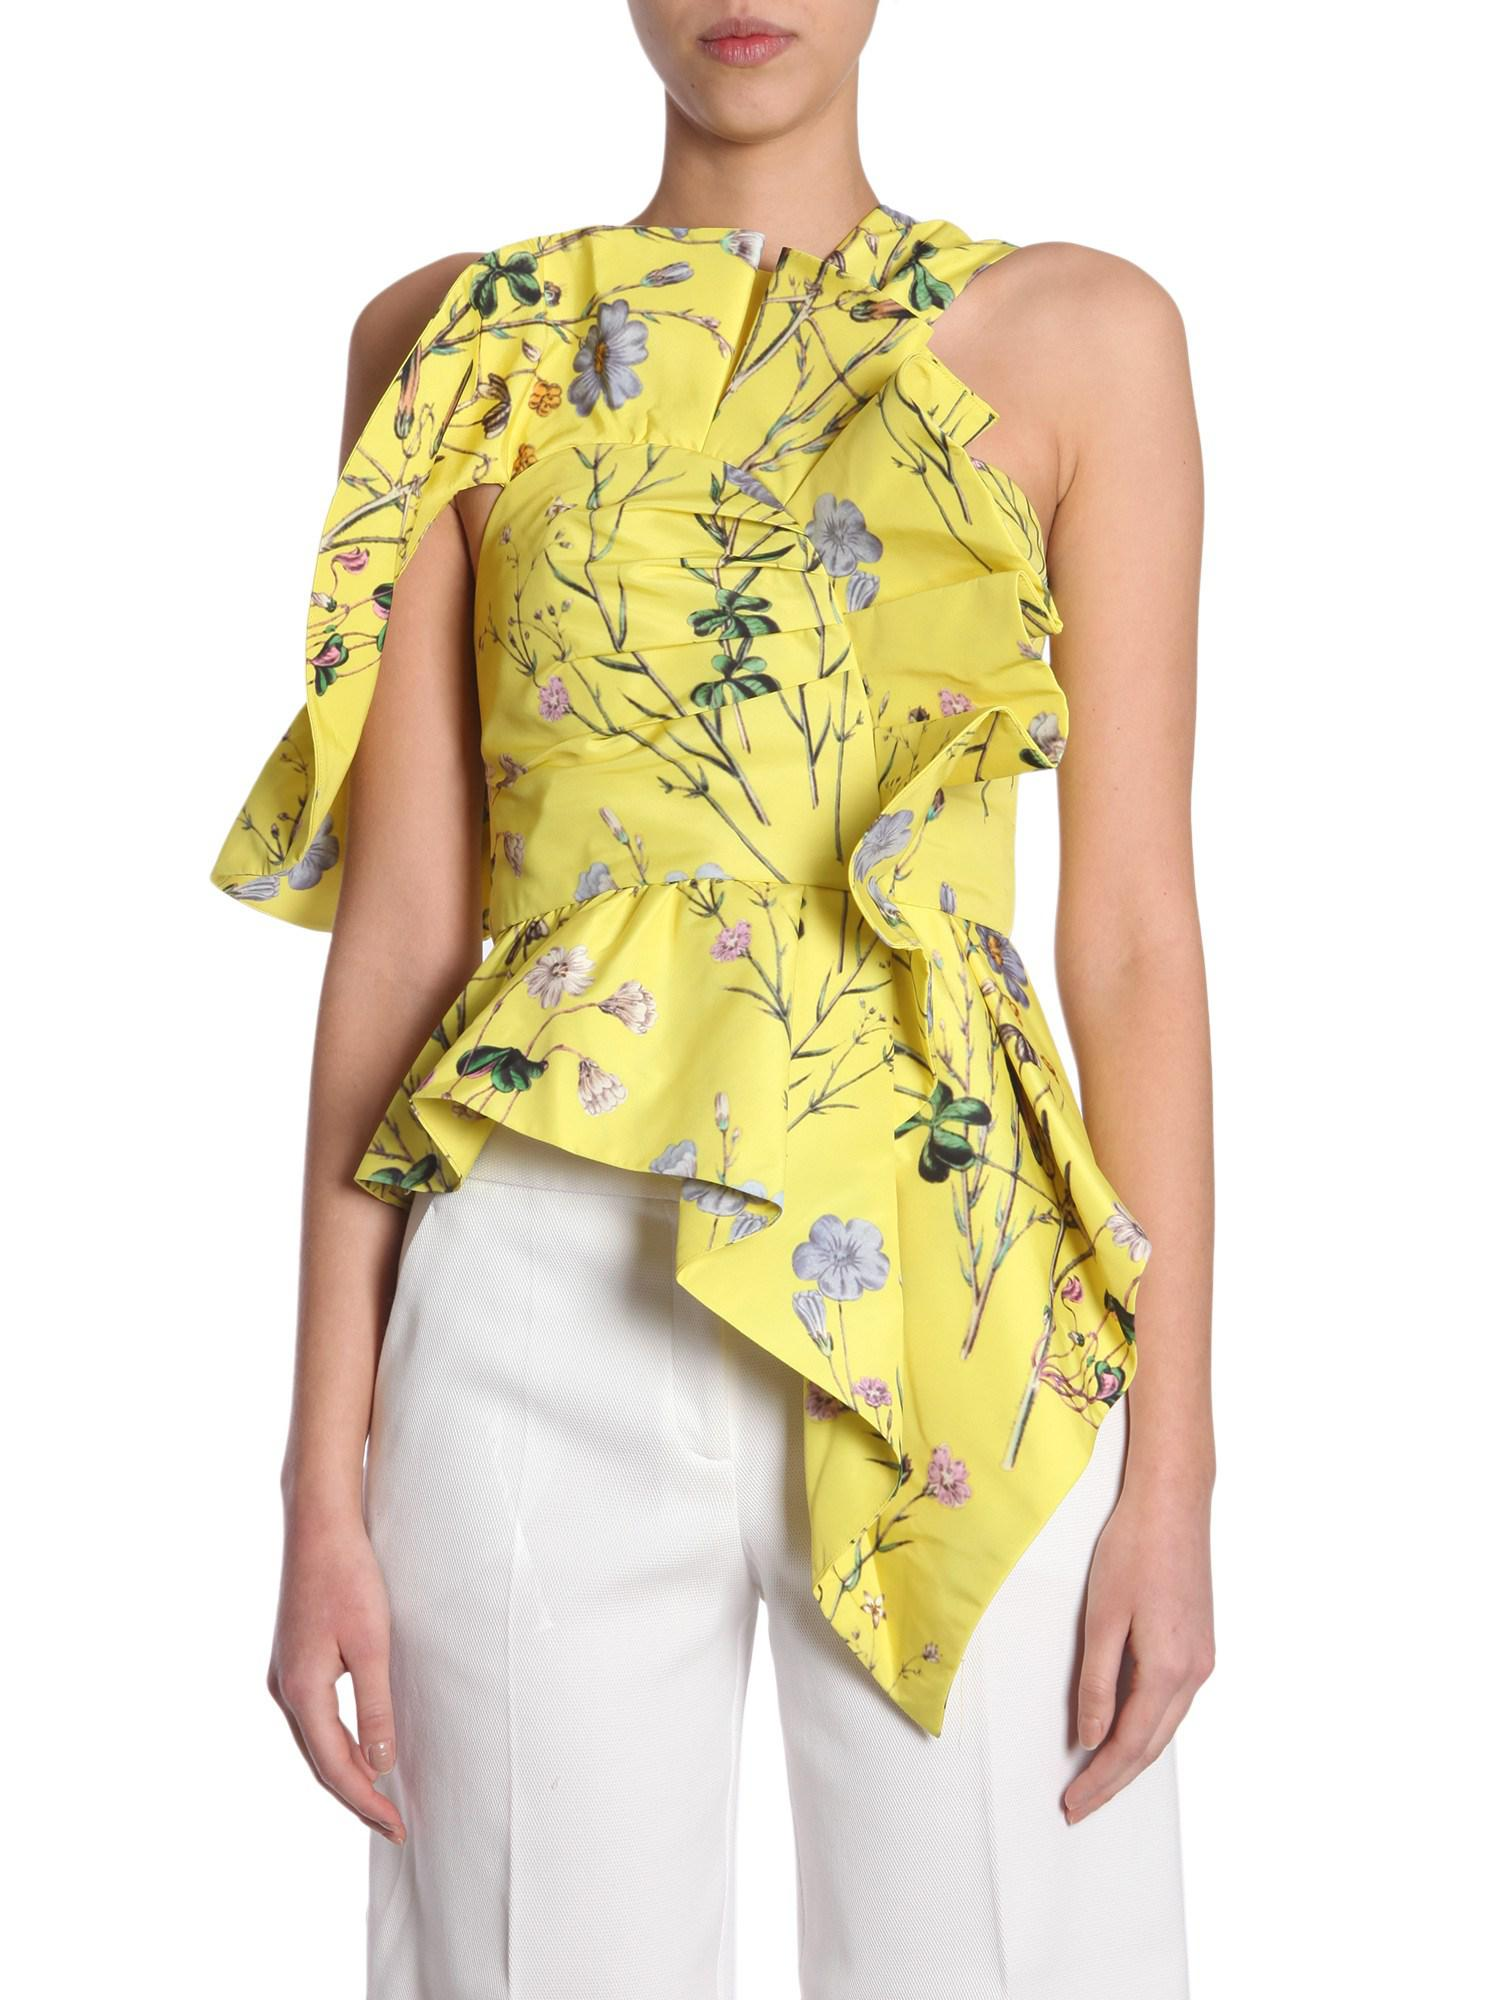 Official Site For Sale Asymmetric graphic floral-print top Self Portrait Clearance Cheapest Good Selling Clearance Big Discount Great Deals f4Hm2aN